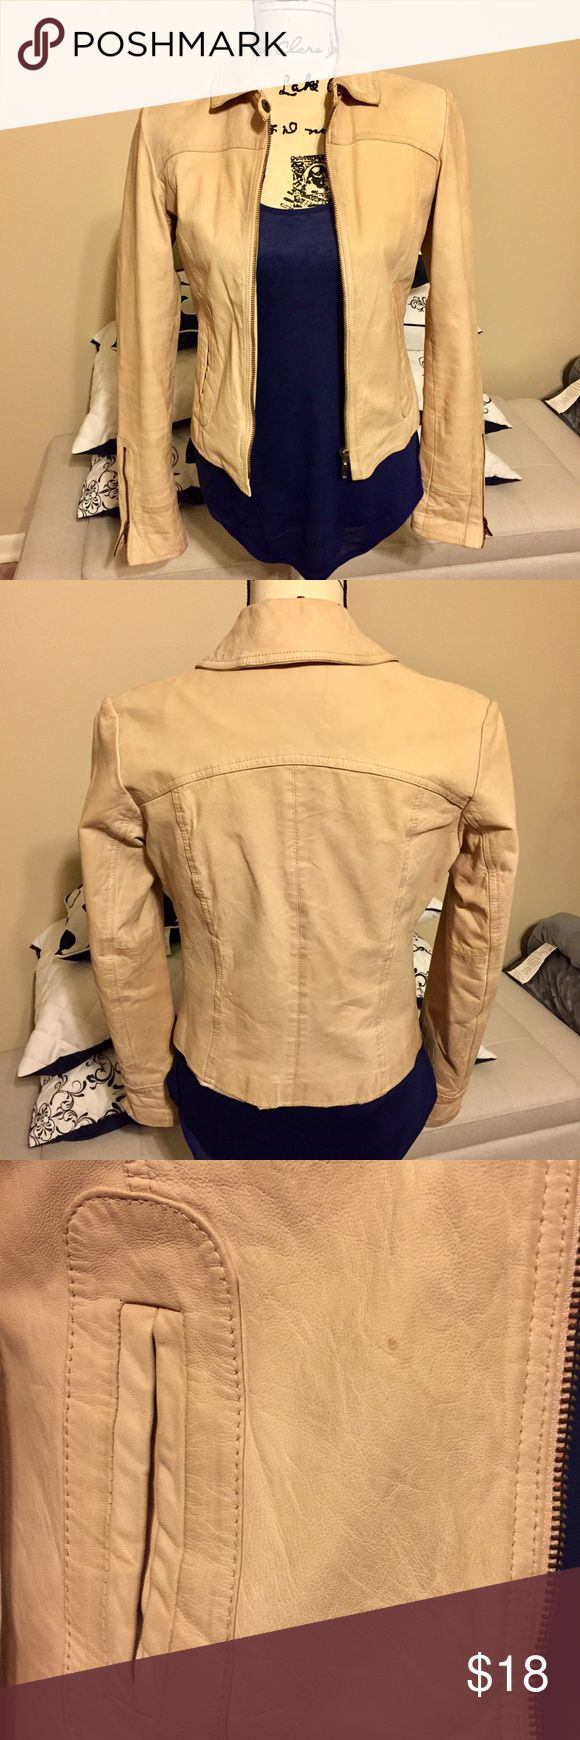 Vntg Authentic Genuine Leather Jacket Vintage Genuine soft leather light pinkish beige authentic Guess jacket. Form hugging and sexy. In need of dry cleaning. My town doesn't have leather dry cleaners, otherwise I wouldn't be selling this jacket. Very good quality item. Some wear around the sleeves. No rips or tears, no bad smells. Polyester lining. Guess Jackets & Coats Blazers